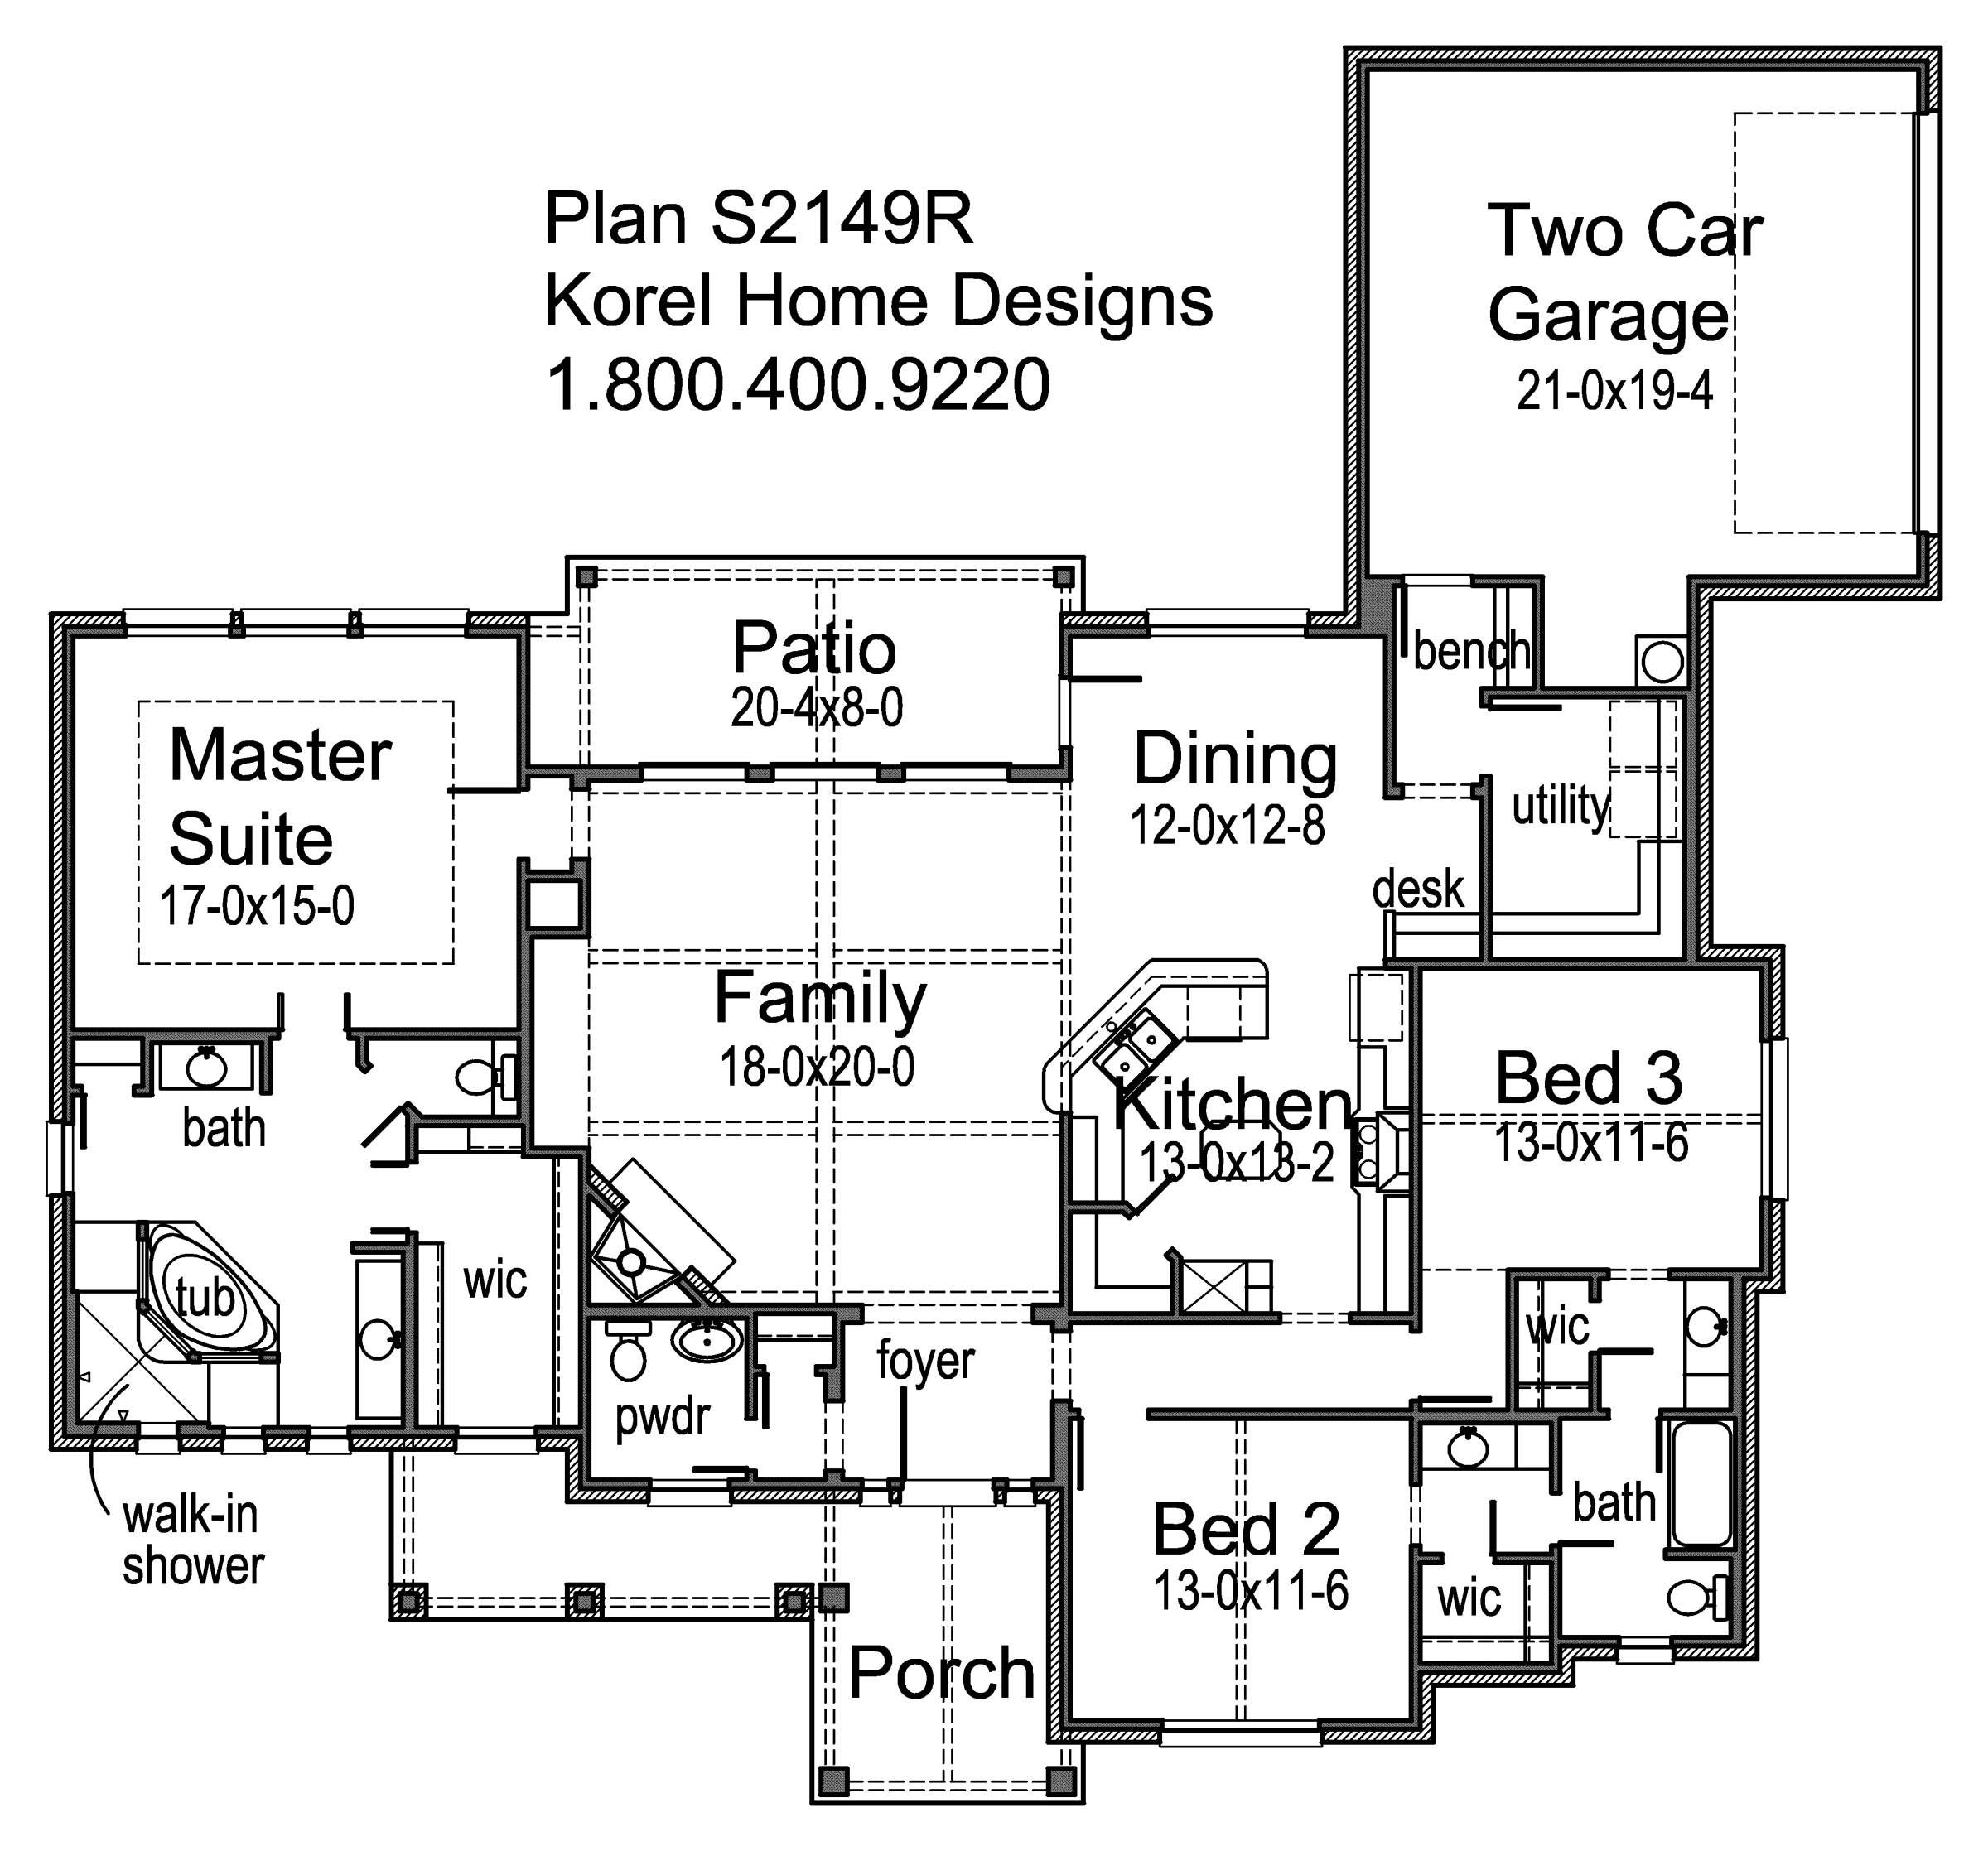 Texas House Plans Over 700 Proven Home Designs: House Plans By Korel Home Designs